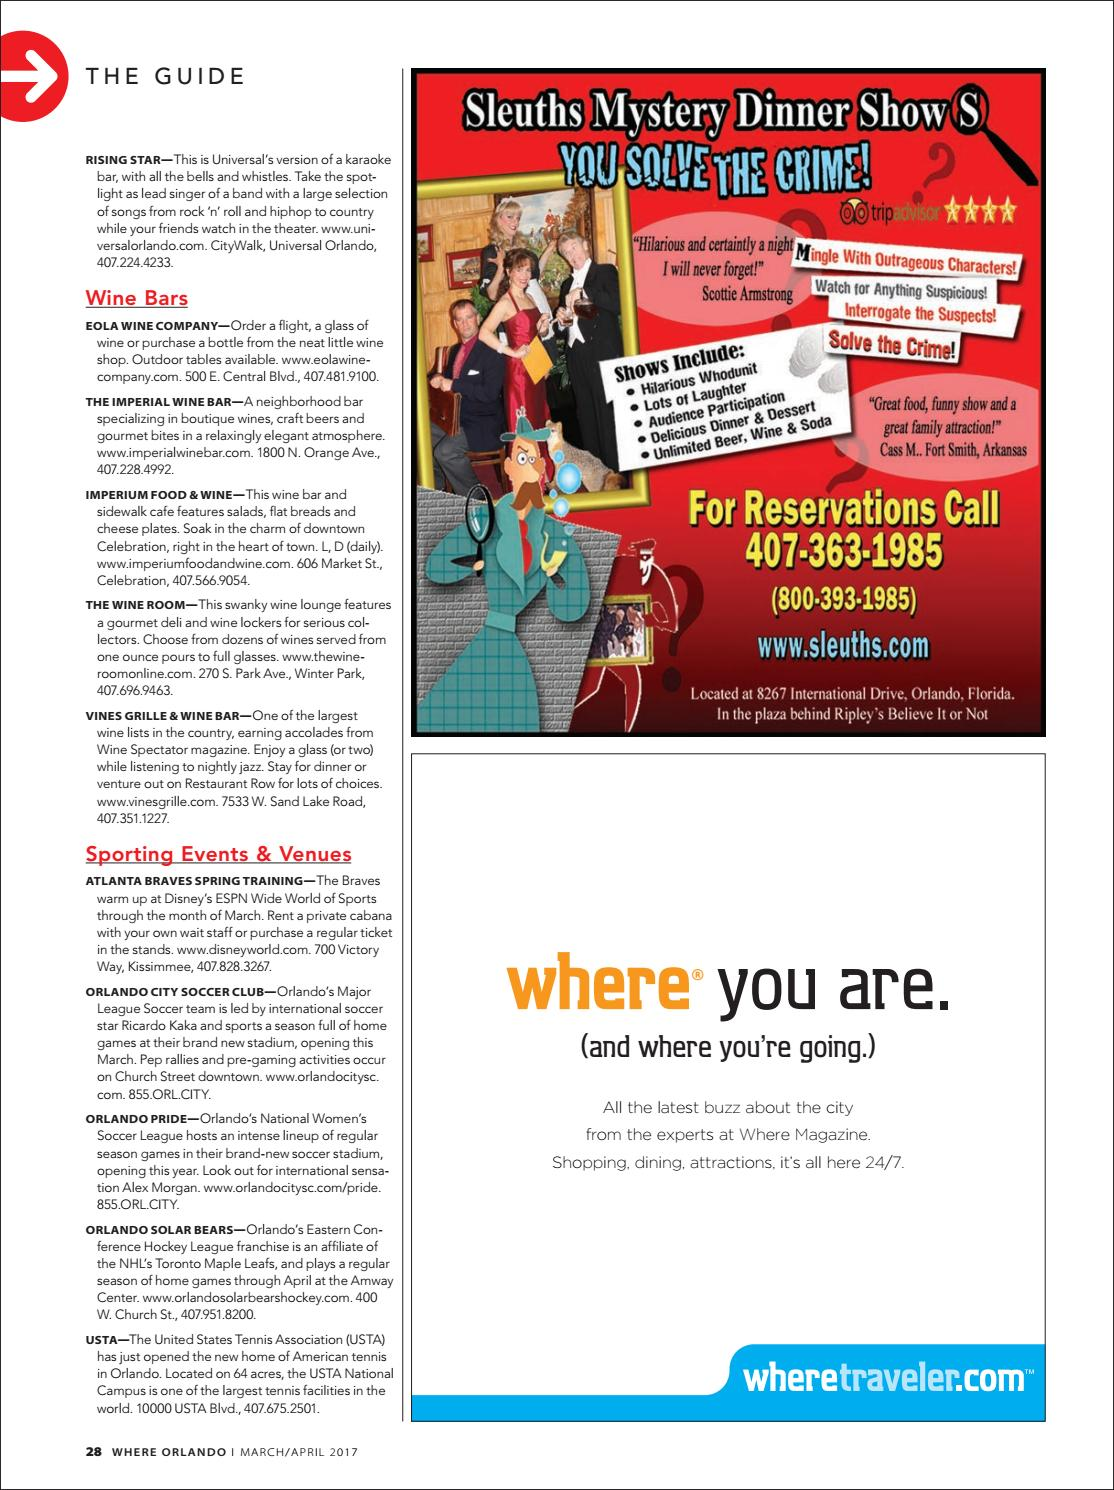 Where Orlando March - April 2017 by Morris Media Network - issuu